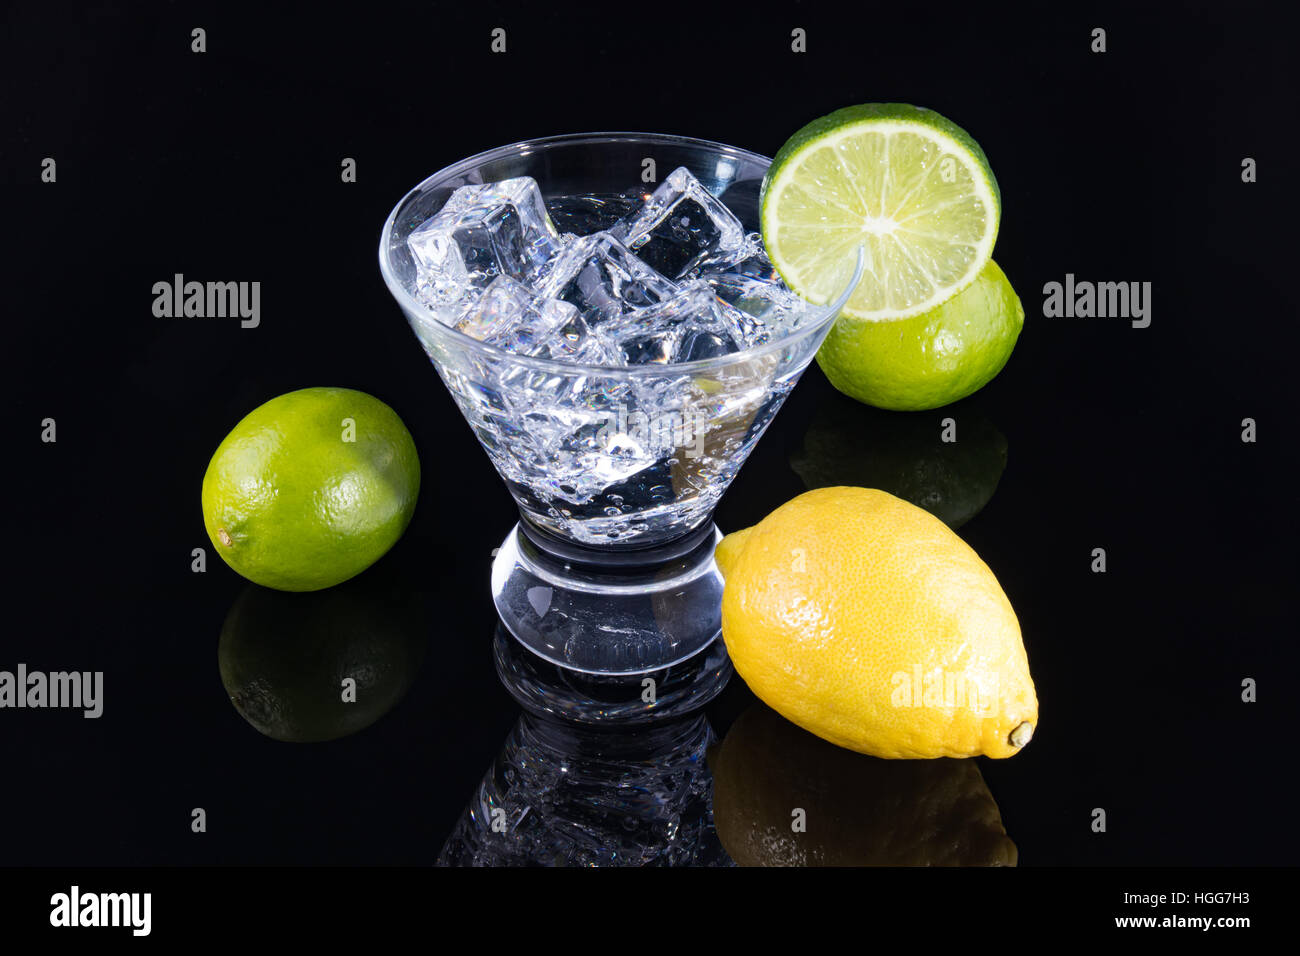 Sparkling beverage in a martini glass with lemons and limes on a black background - Stock Image